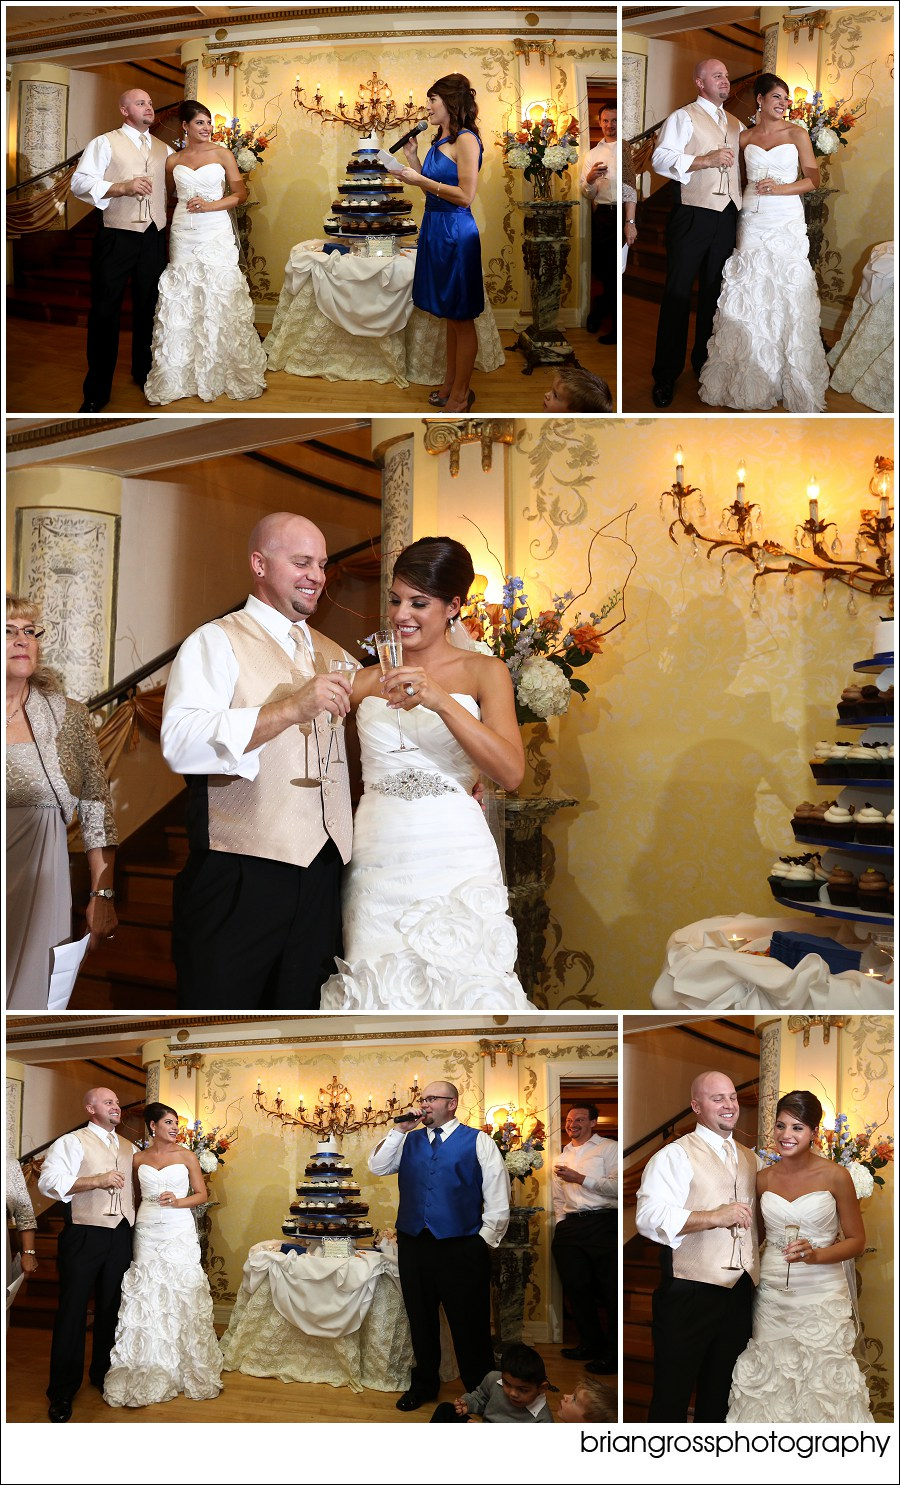 PhilPaulaWeddingBlog_Grand_Island_Mansion_Wedding_briangrossphotography-280_WEB